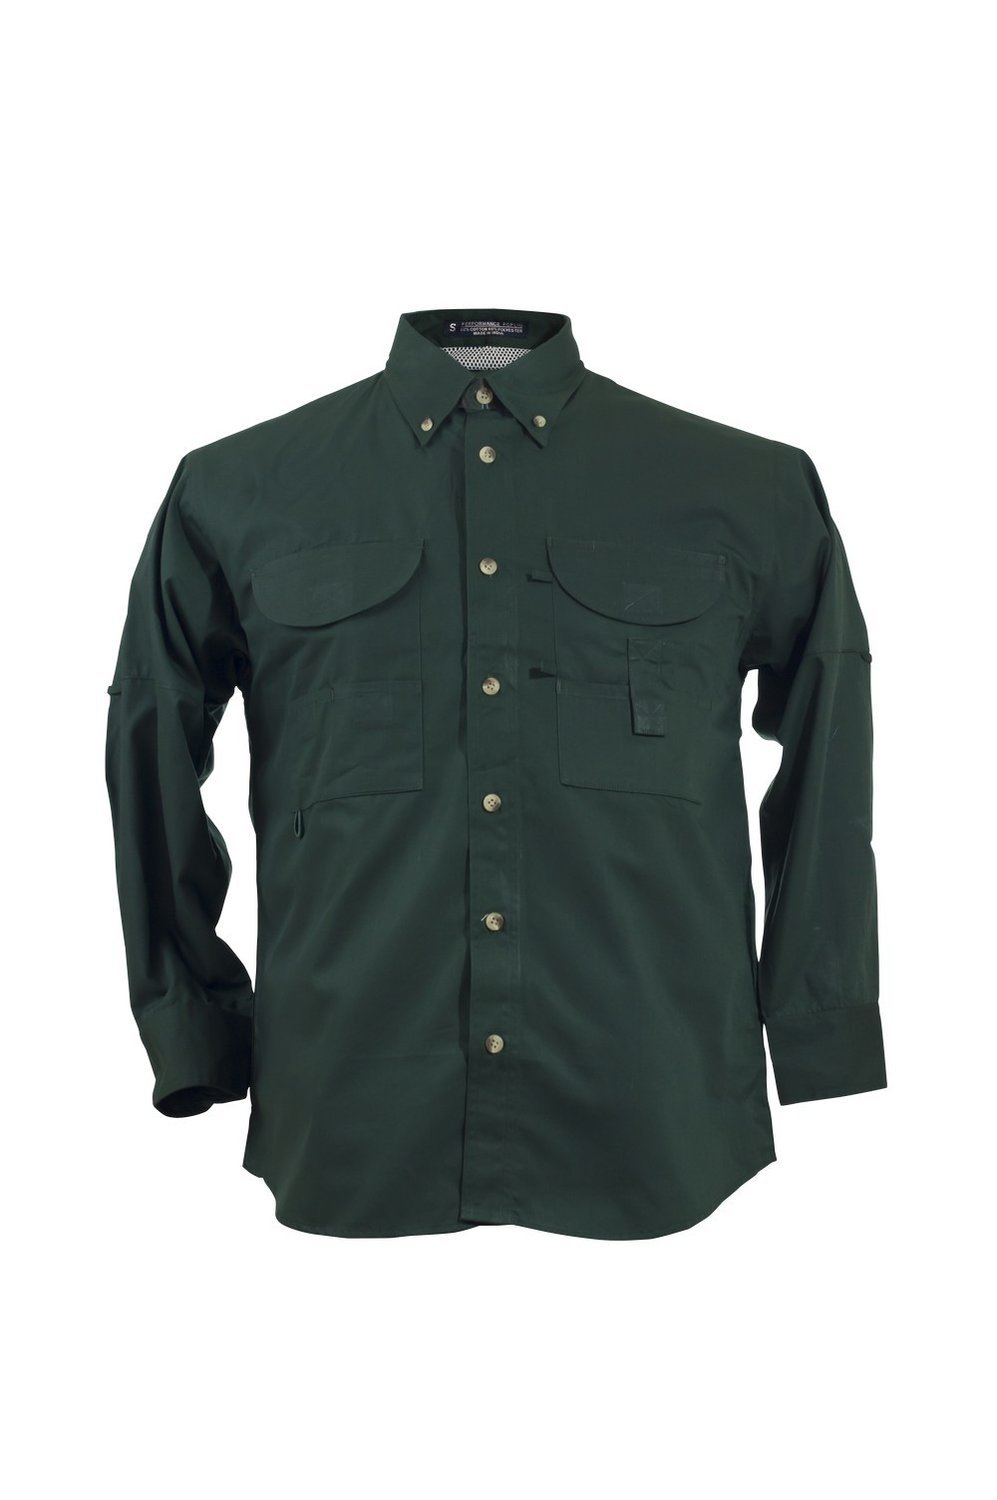 Tiger Hill Men's Fishing Shirt Long Sleeves Forest Green